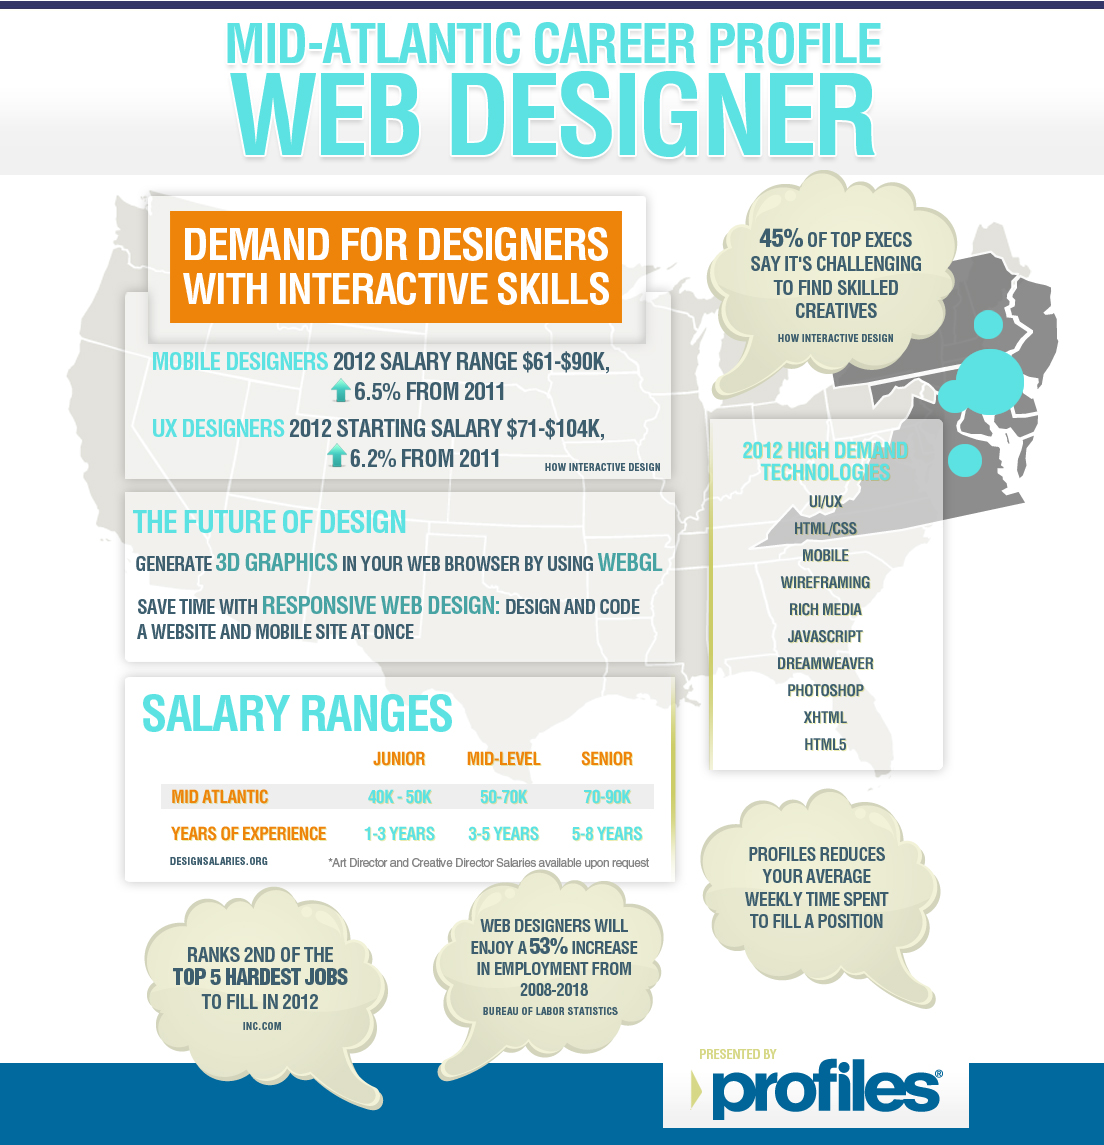 New Infographic Web Designer Career Profile From The Recruiting Agency Experts